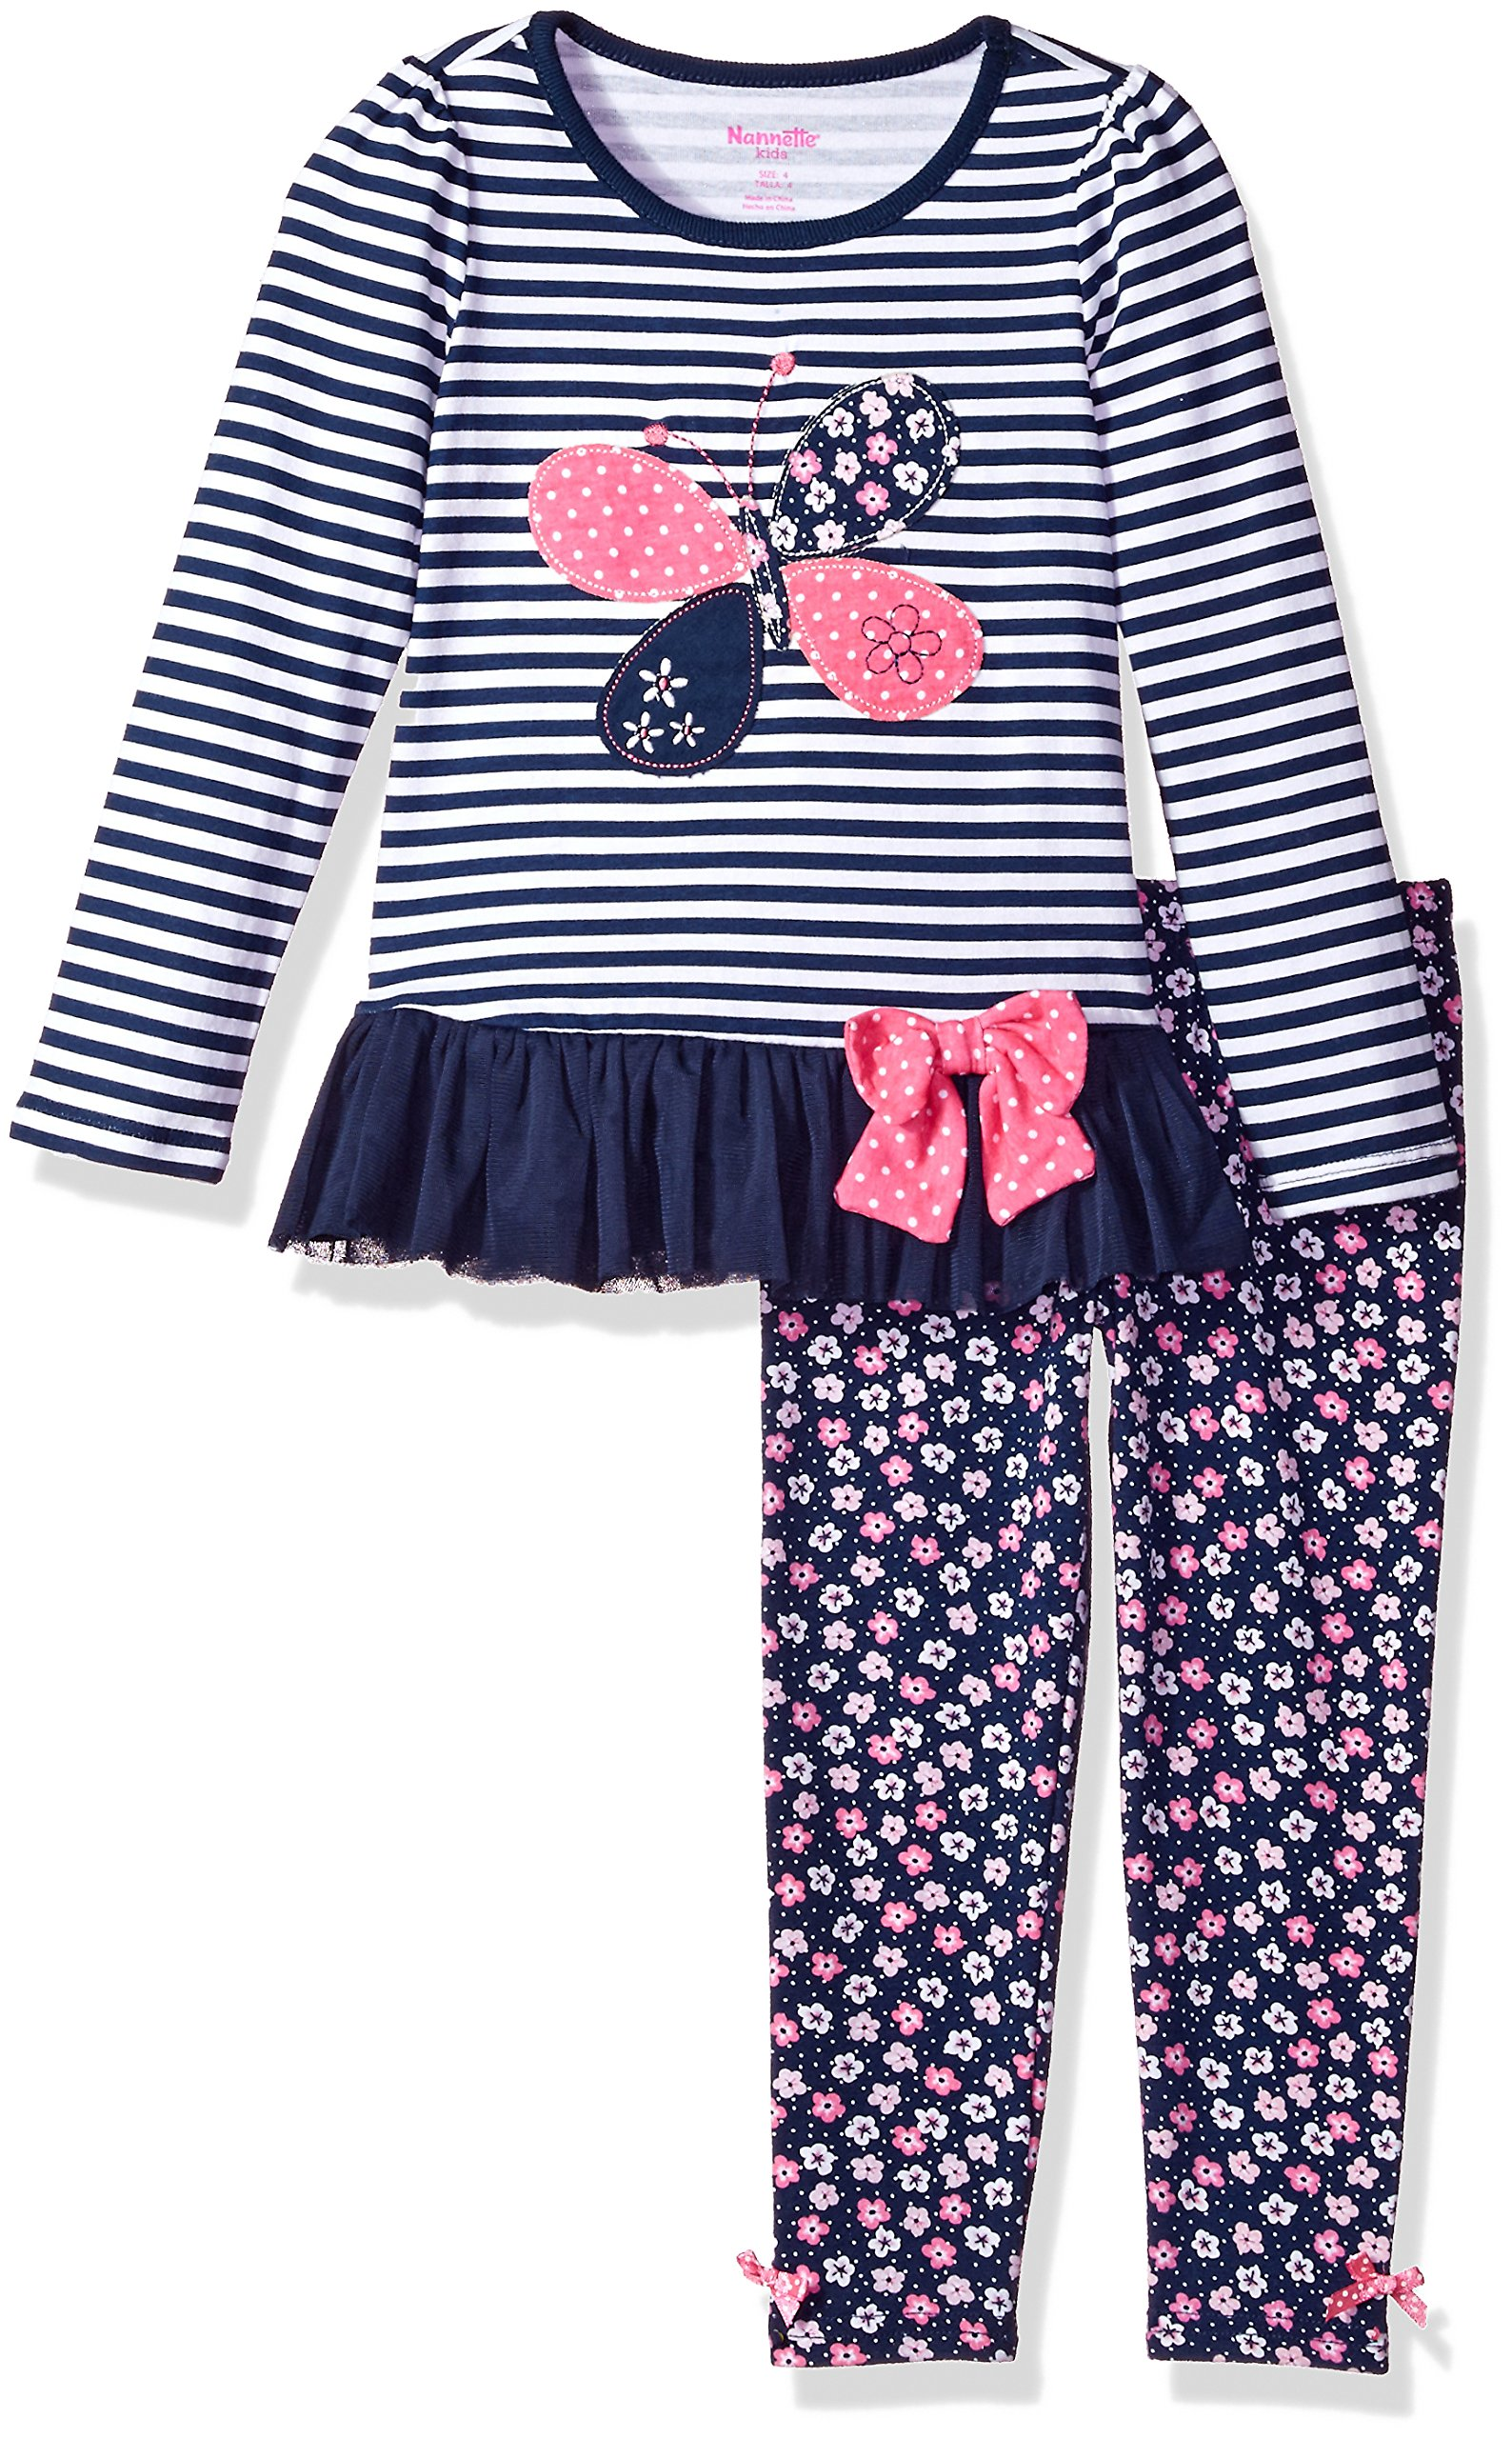 Nannette Little Girls' 2 Piece Playwear Long Sleeve Top and Legging Set, Navy Blue, 6 by Nannette (Image #1)